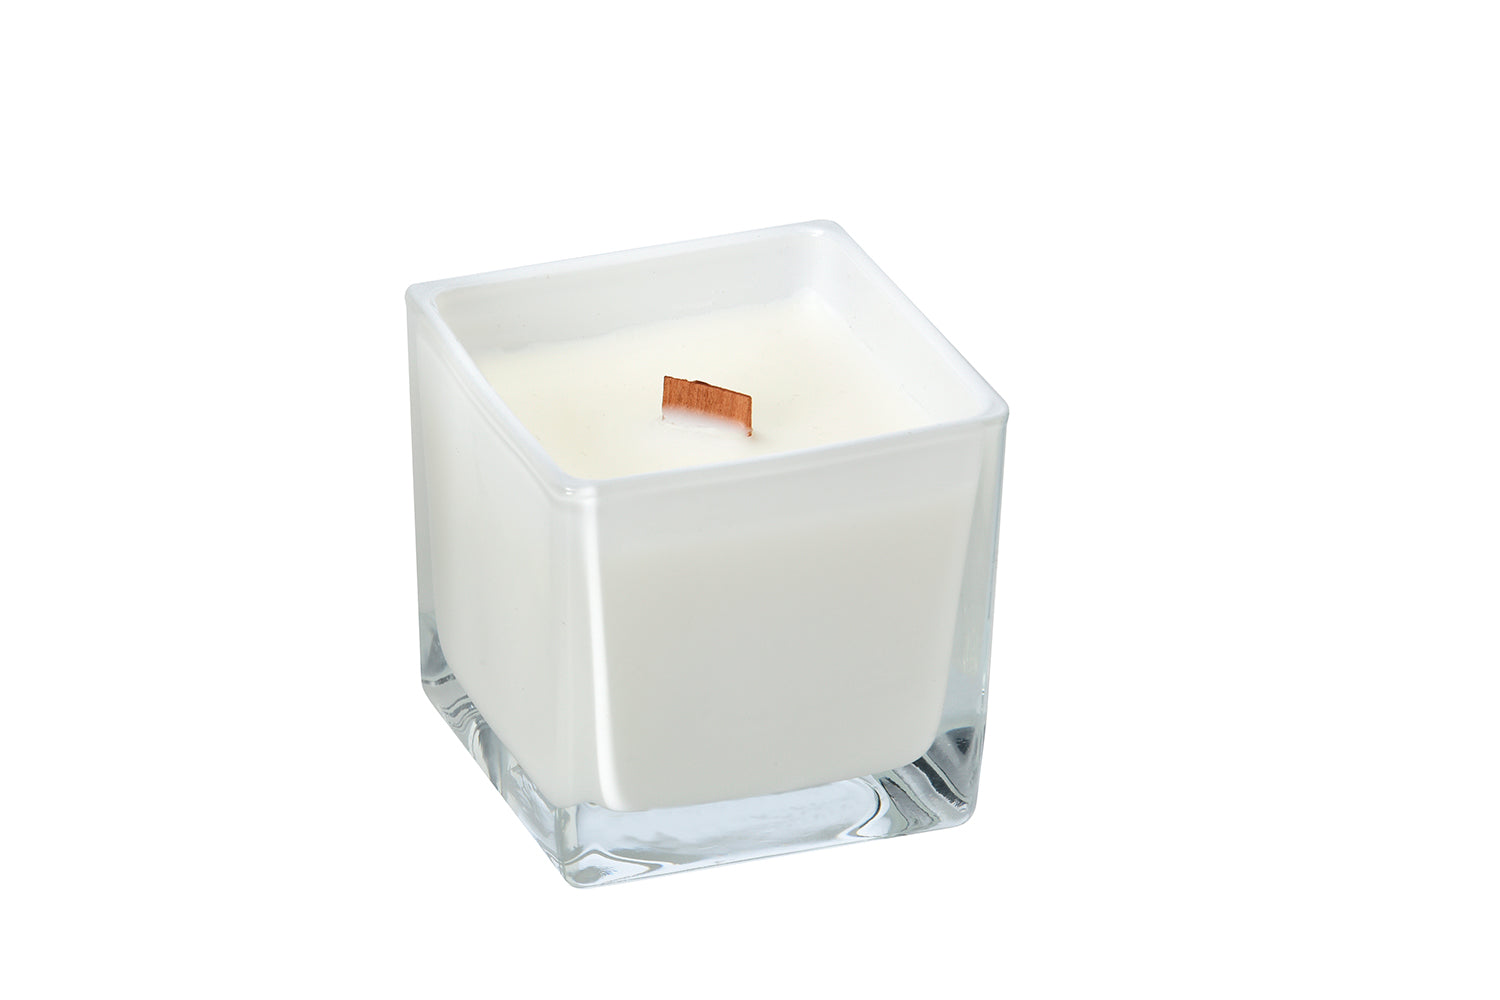 vaillia chai candle in a white glass container